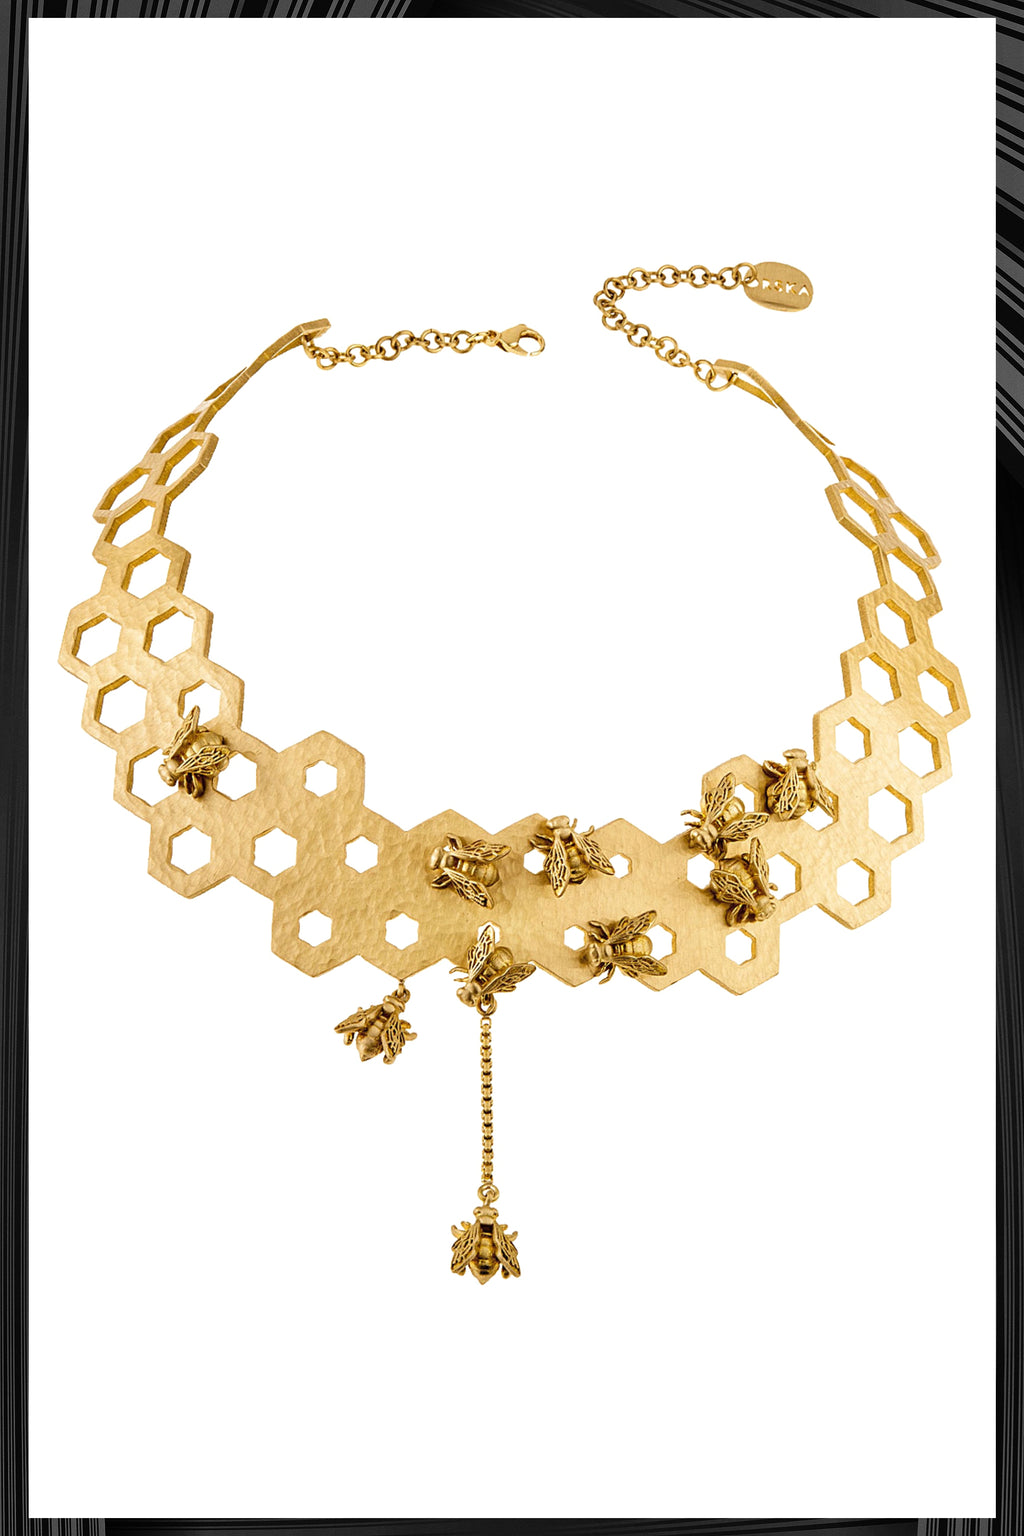 Honey Comb Necklace | Free Delivery - Quick Shipping